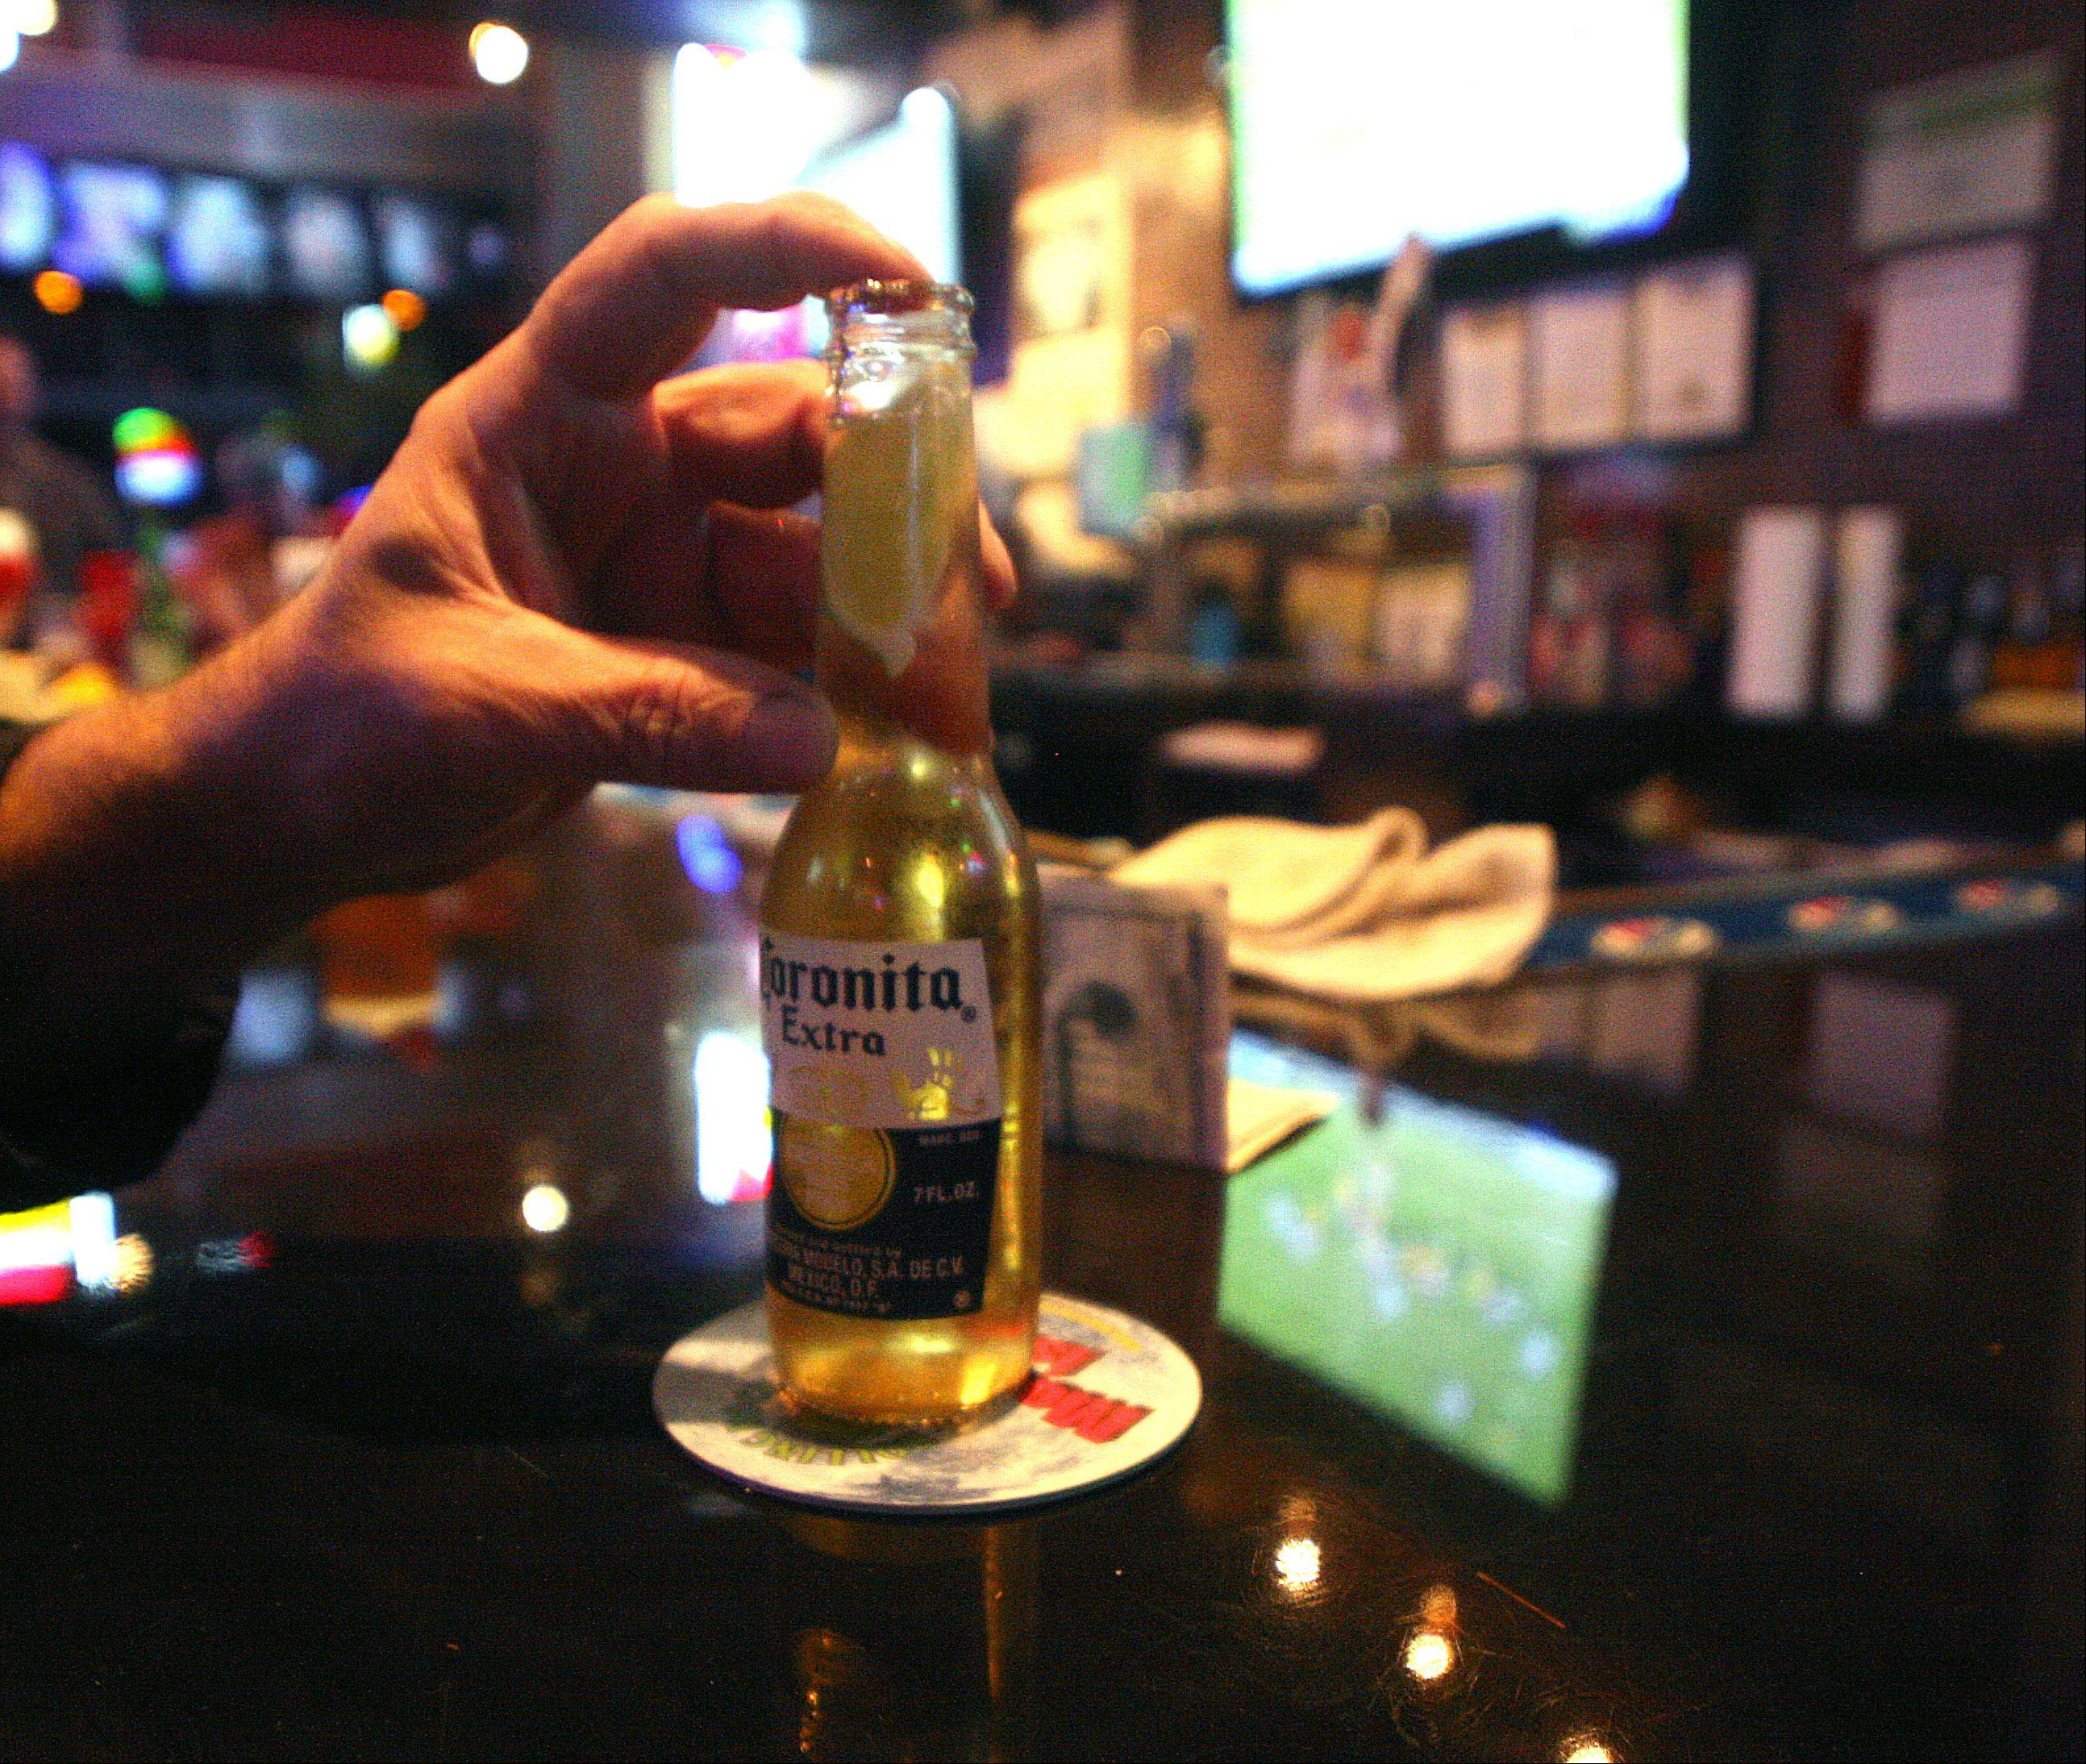 Joel Tarpinian of Island Lake puts the finishing touch on a lime in his beer at the Pour House Bar & Grill.